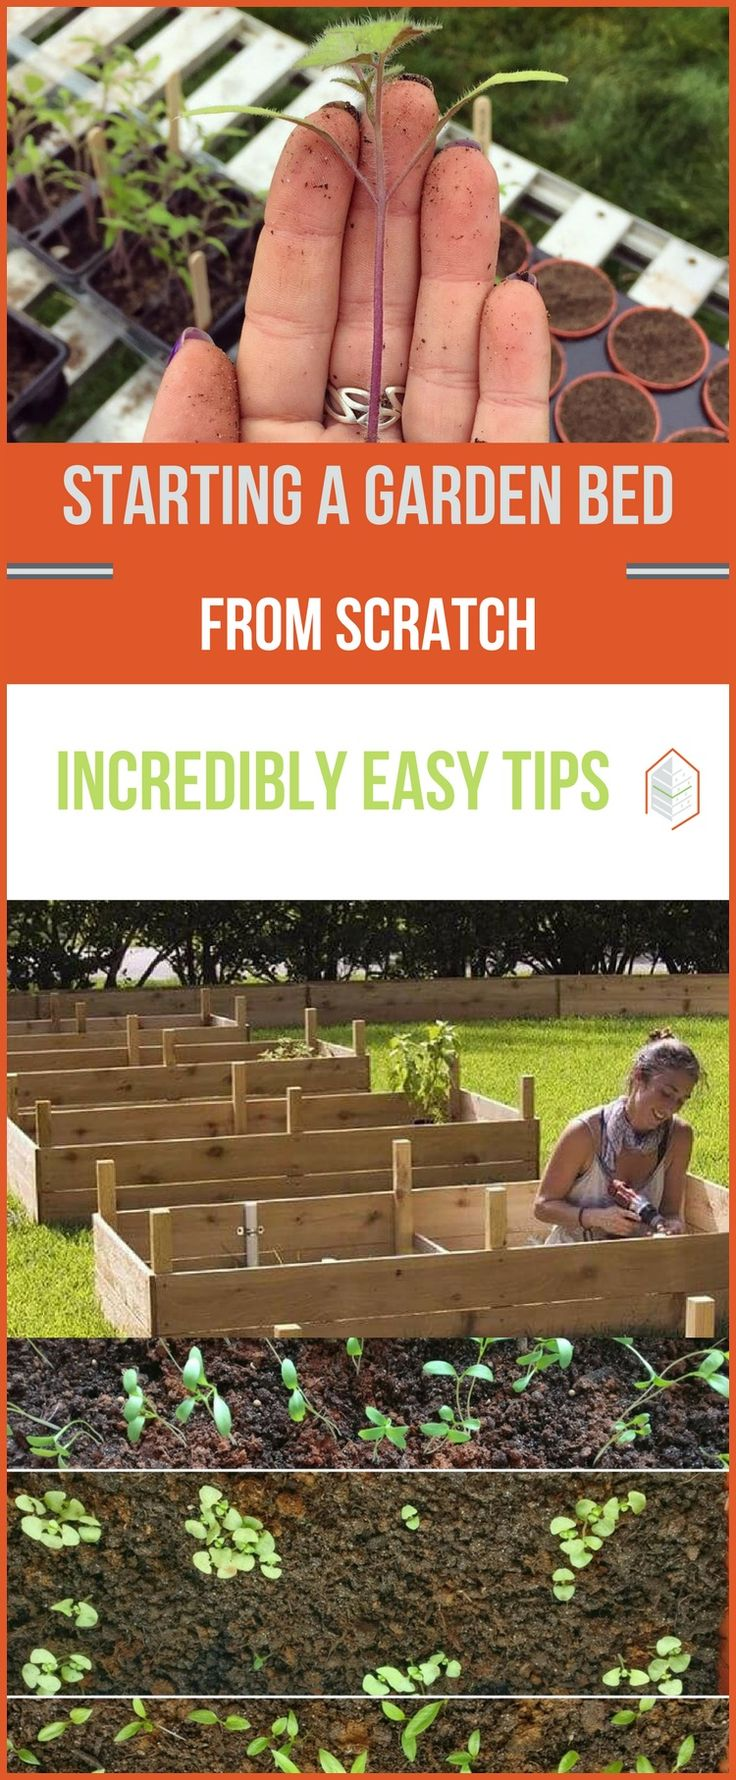 Starting a Garden Bed from Scratch: Tips for Beginners. Starting a garden bed from scratch? Here's how. If you happen to love gardening, but scared off by time constrains or by digging on the ground, don't worry. #urbangardening #urbanfarming #gardening #diy #garden #ugrpost